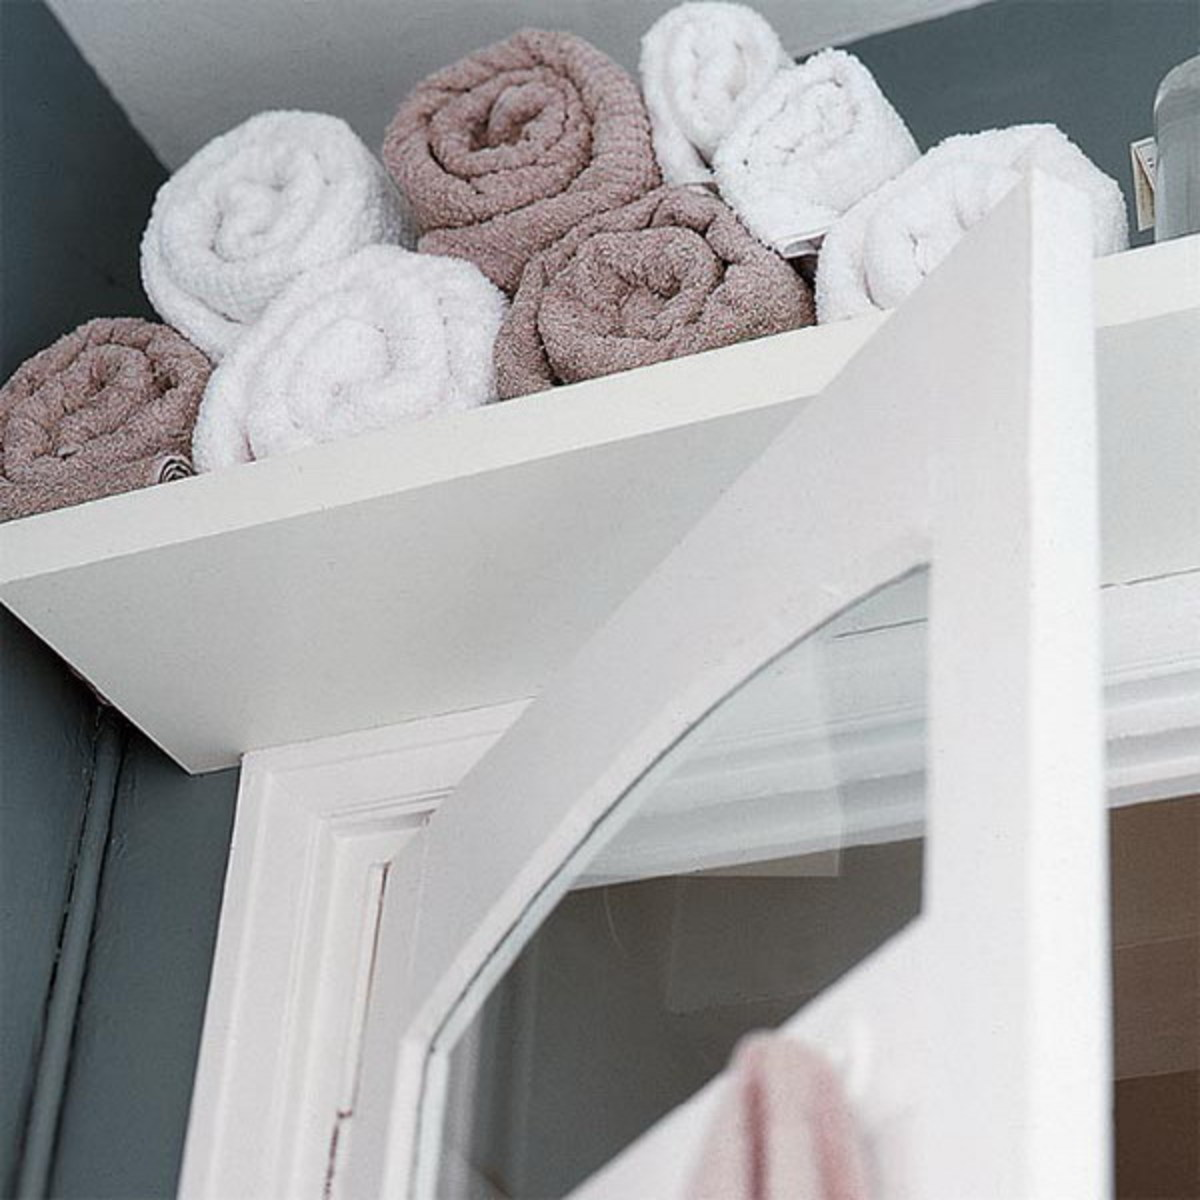 Shelf space is always key in small spaces. Whenever possible free hanging shelves are best to keep things off the floor.